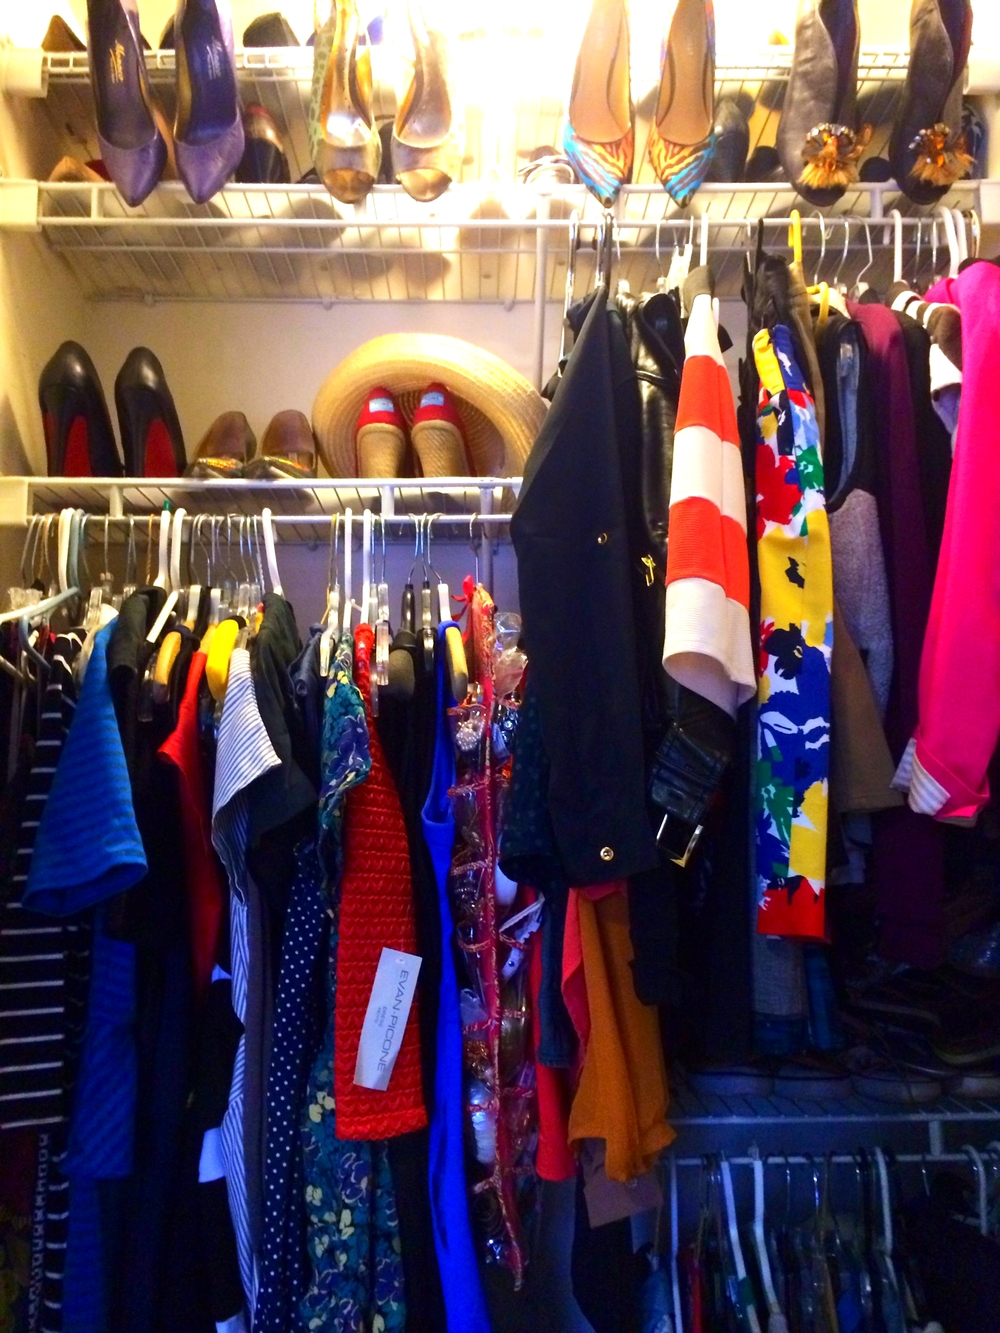 How to fit 28 years of clothing in one tiny closet.